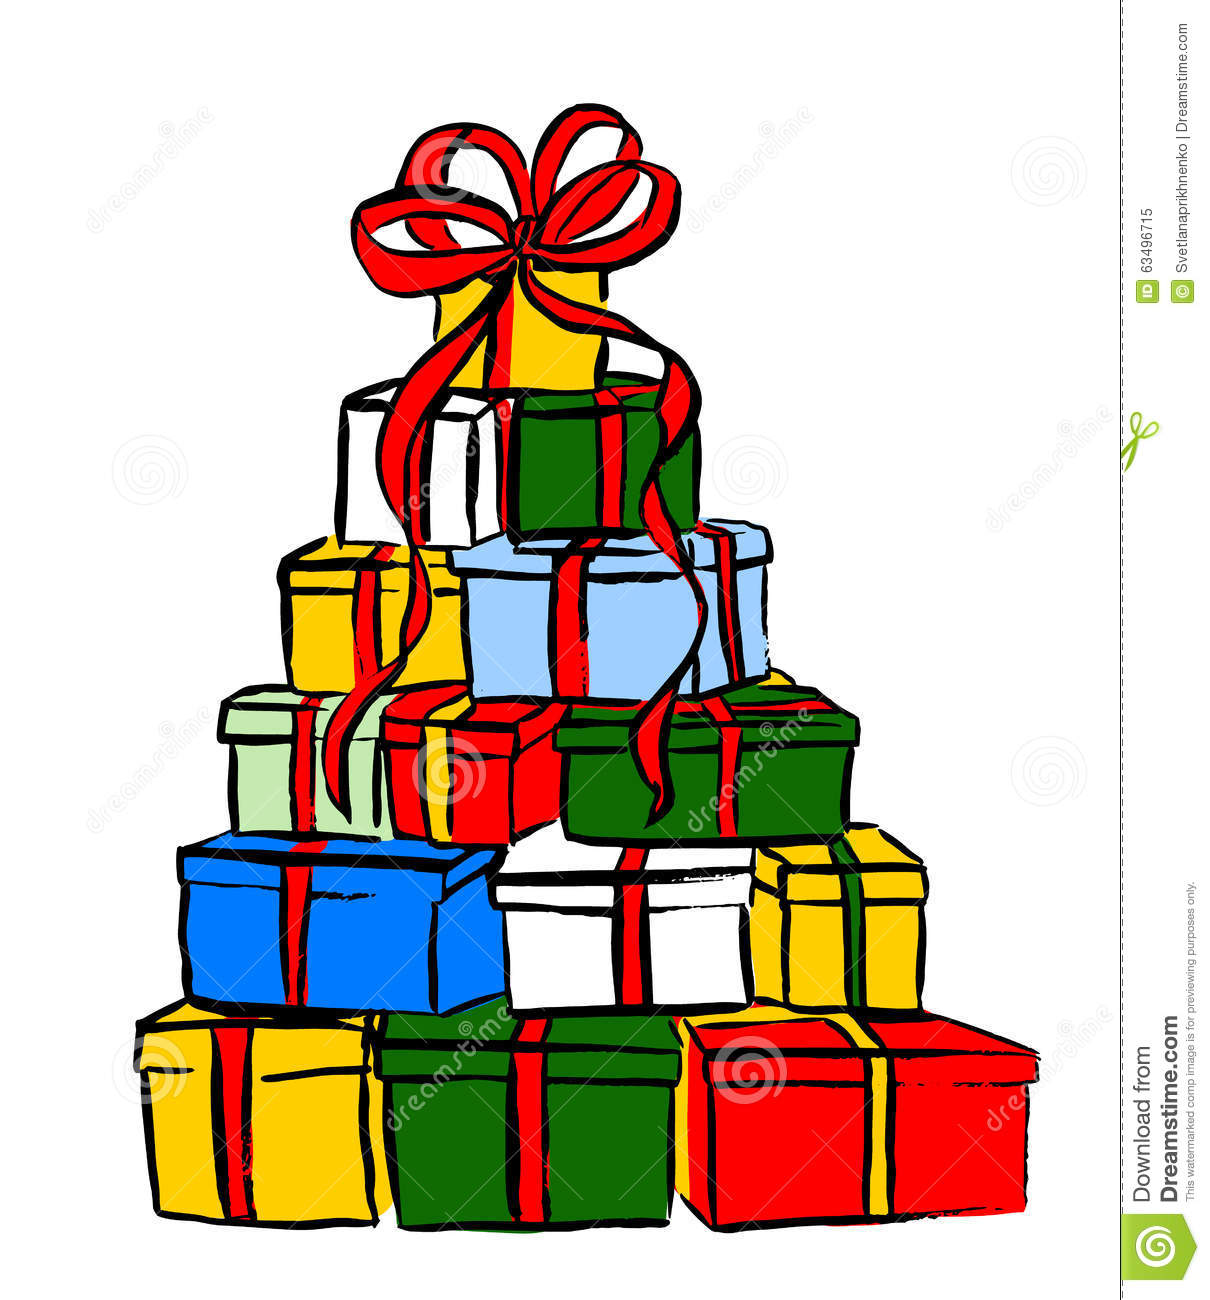 stack of christmas gifts stock vector illustration of illustration rh dreamstime com opening presents clipart present clip art black and white